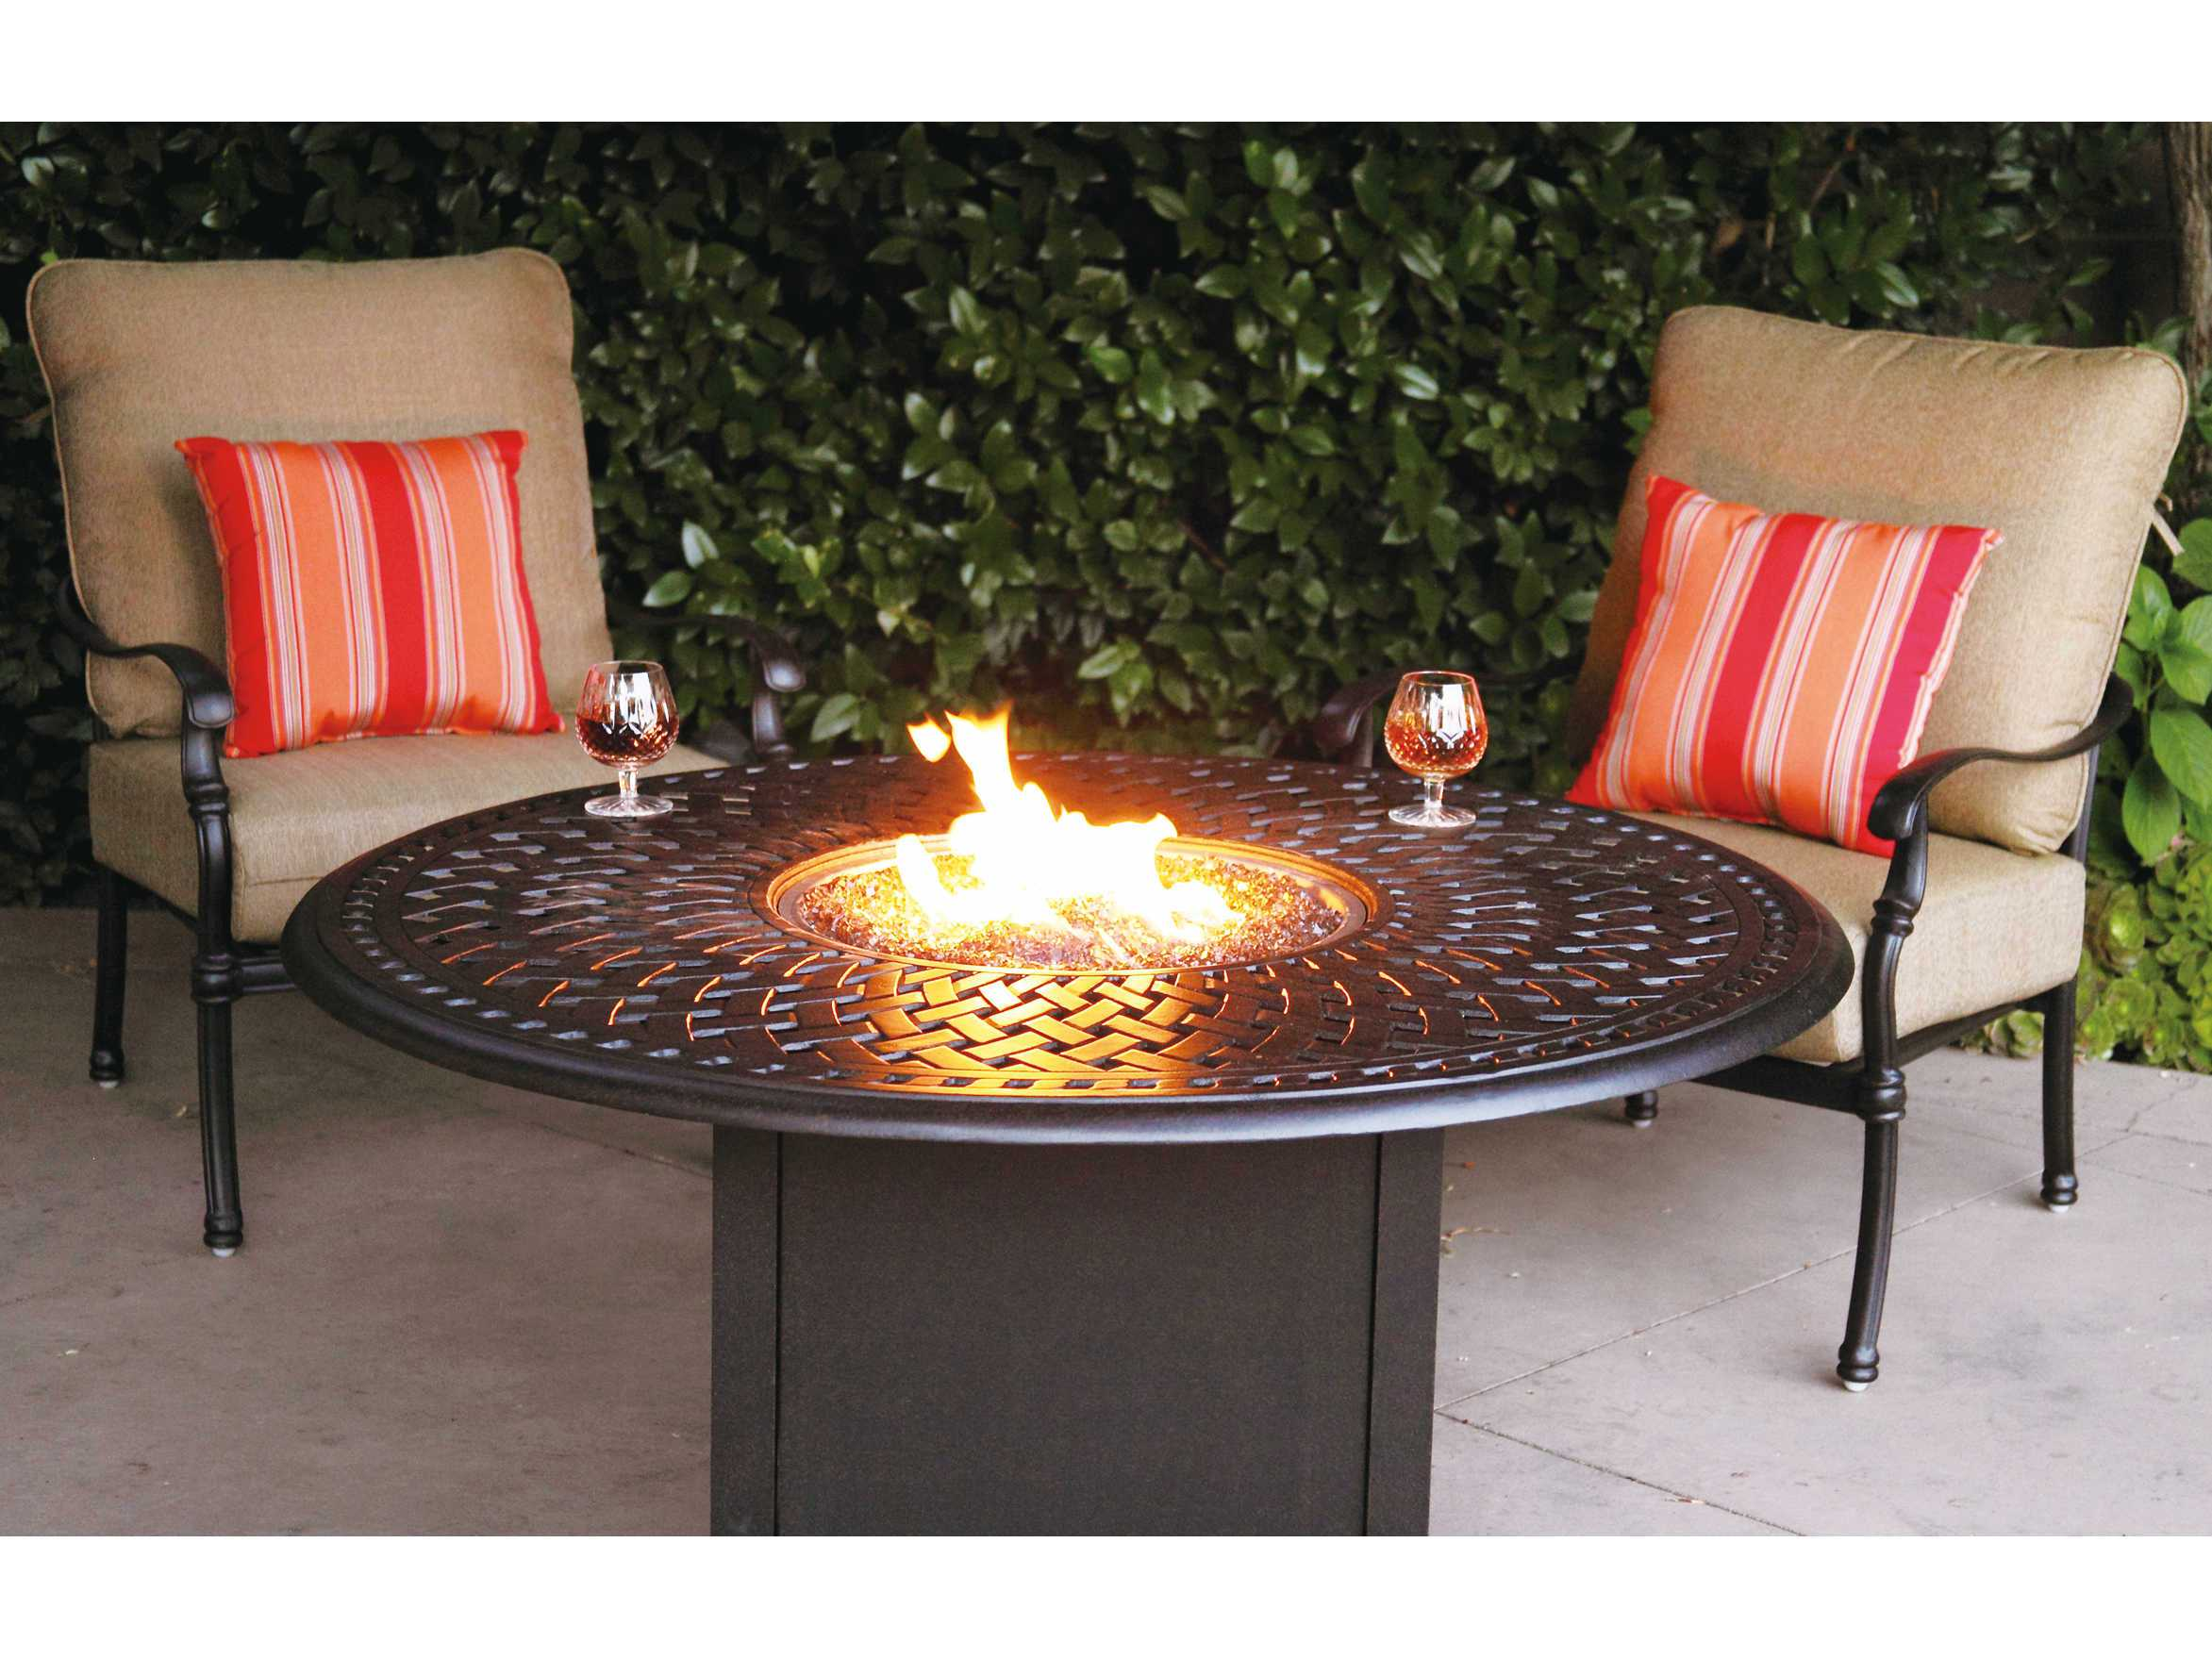 Darlee Outdoor Living Series 60 Cast Aluminum 60 Round Propane